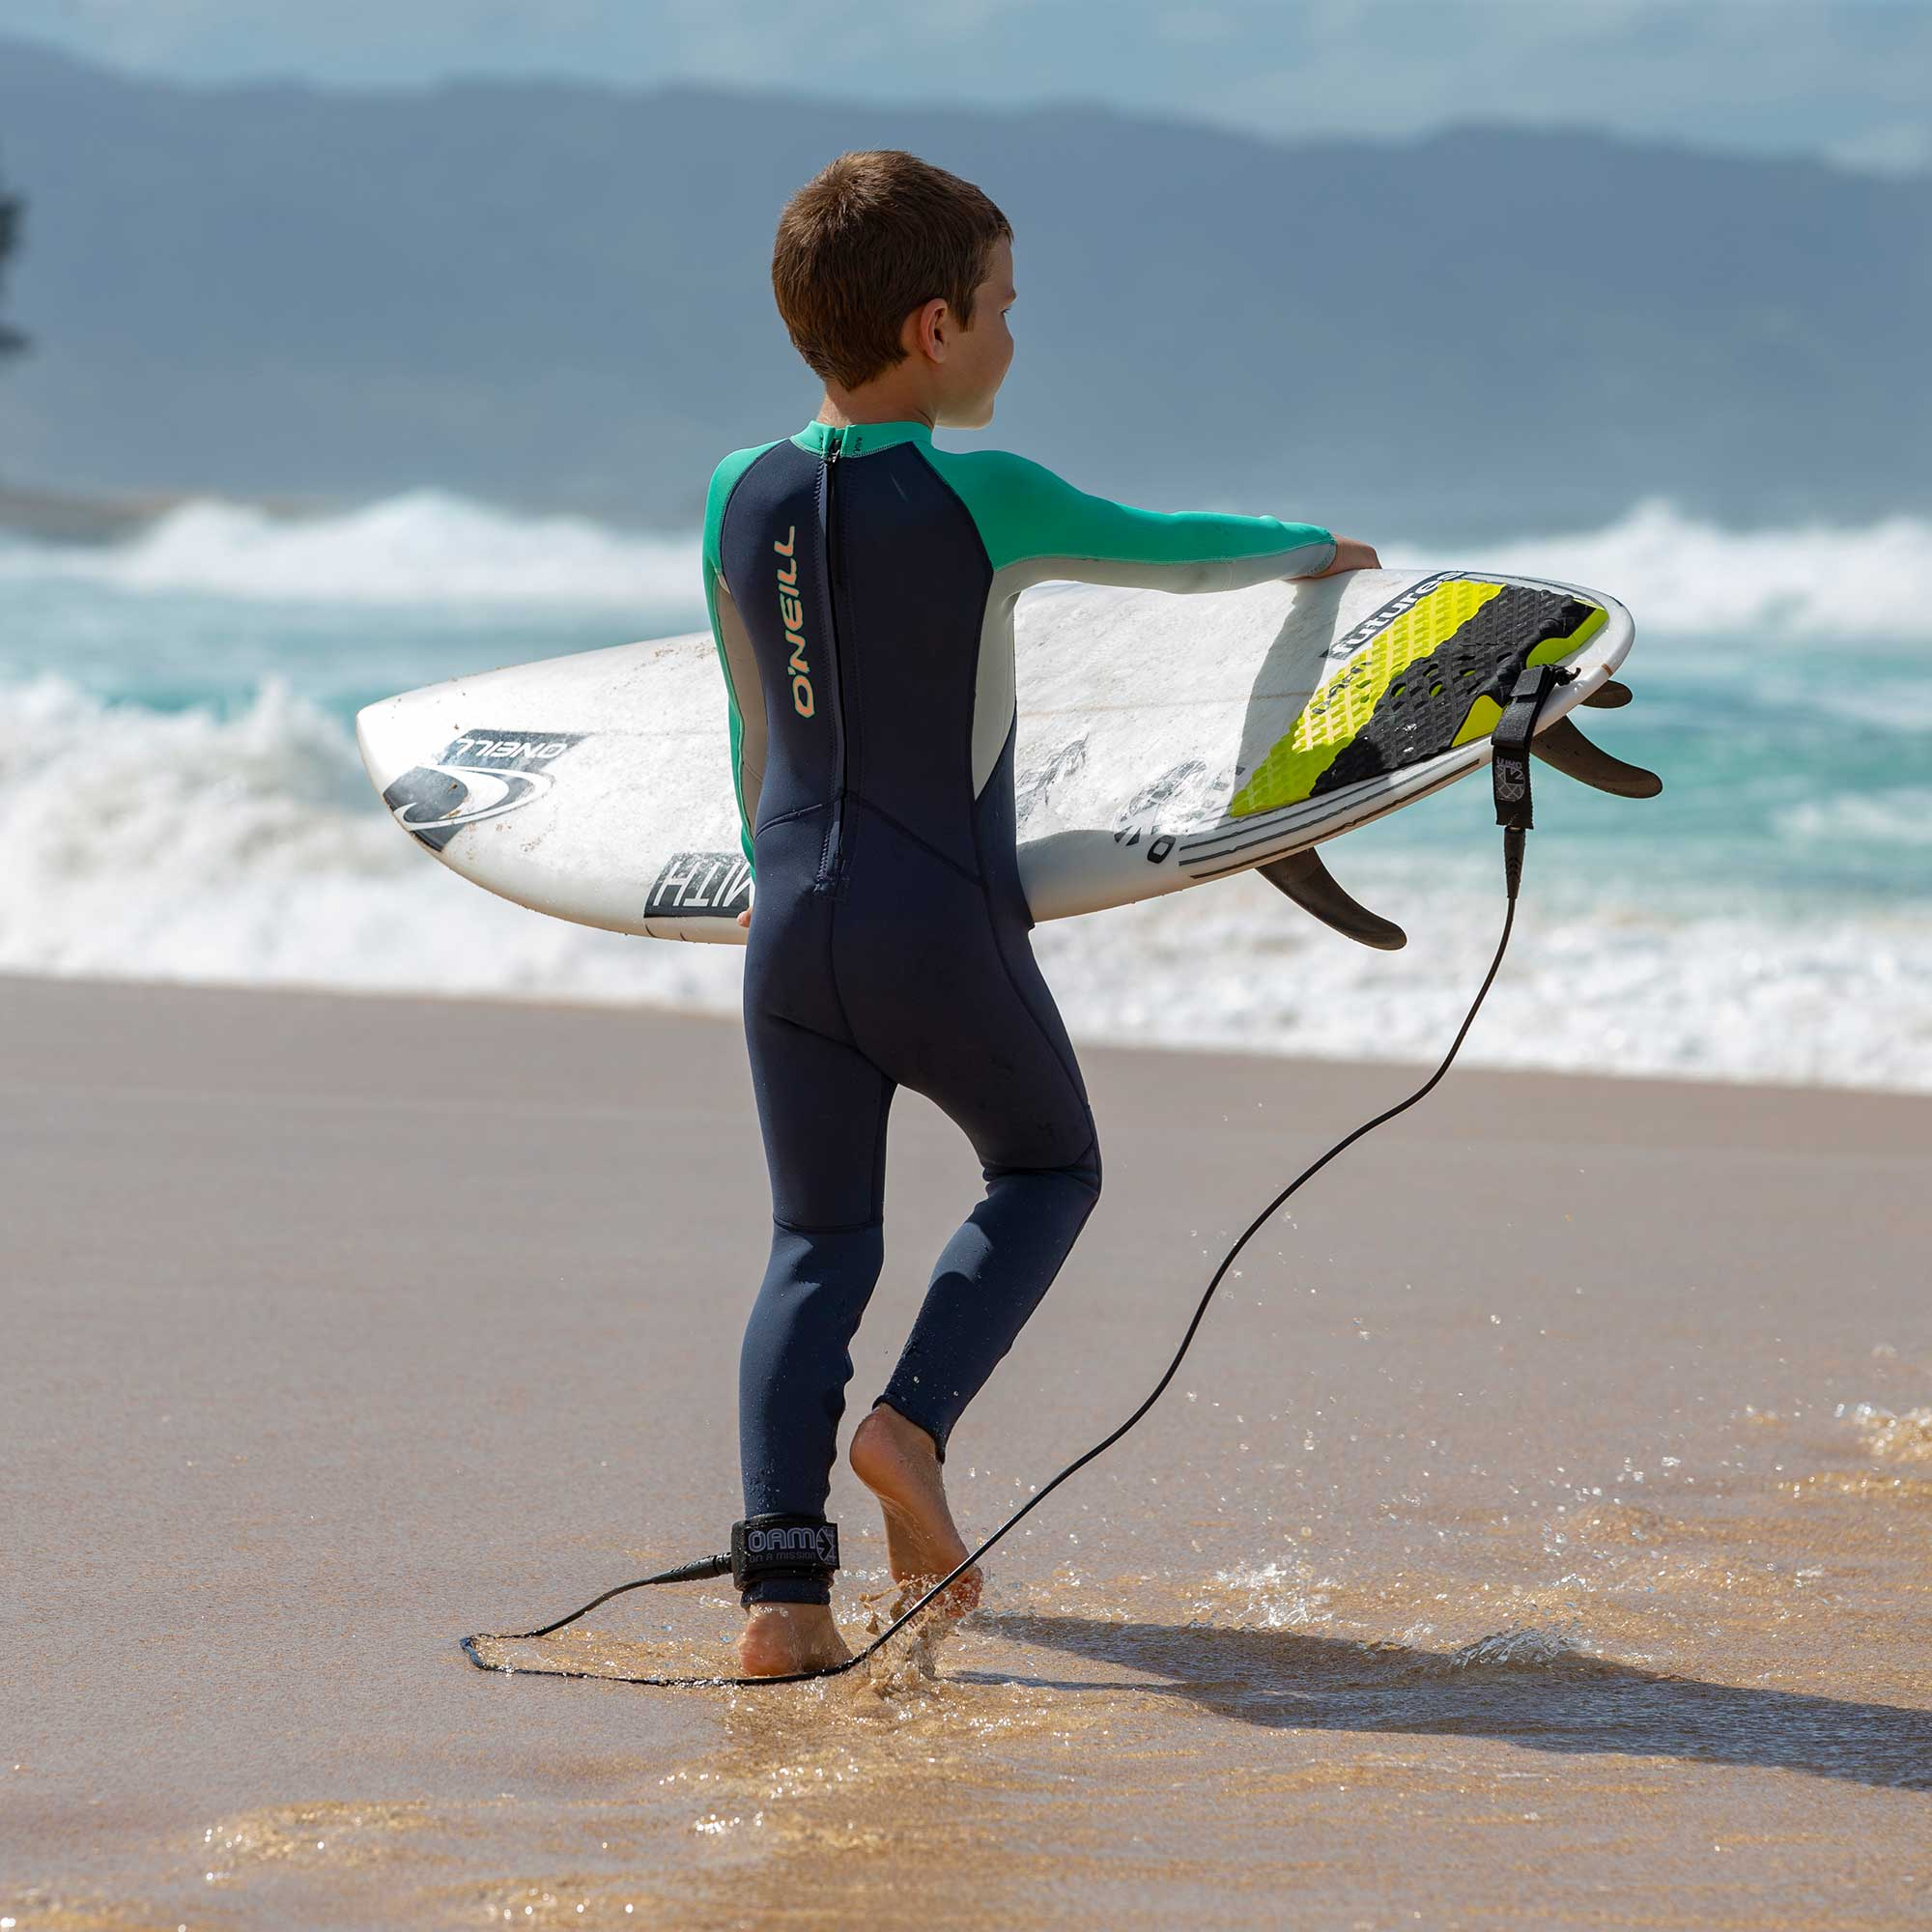 What are the best kids wetsuits for keeping warm in the UK?